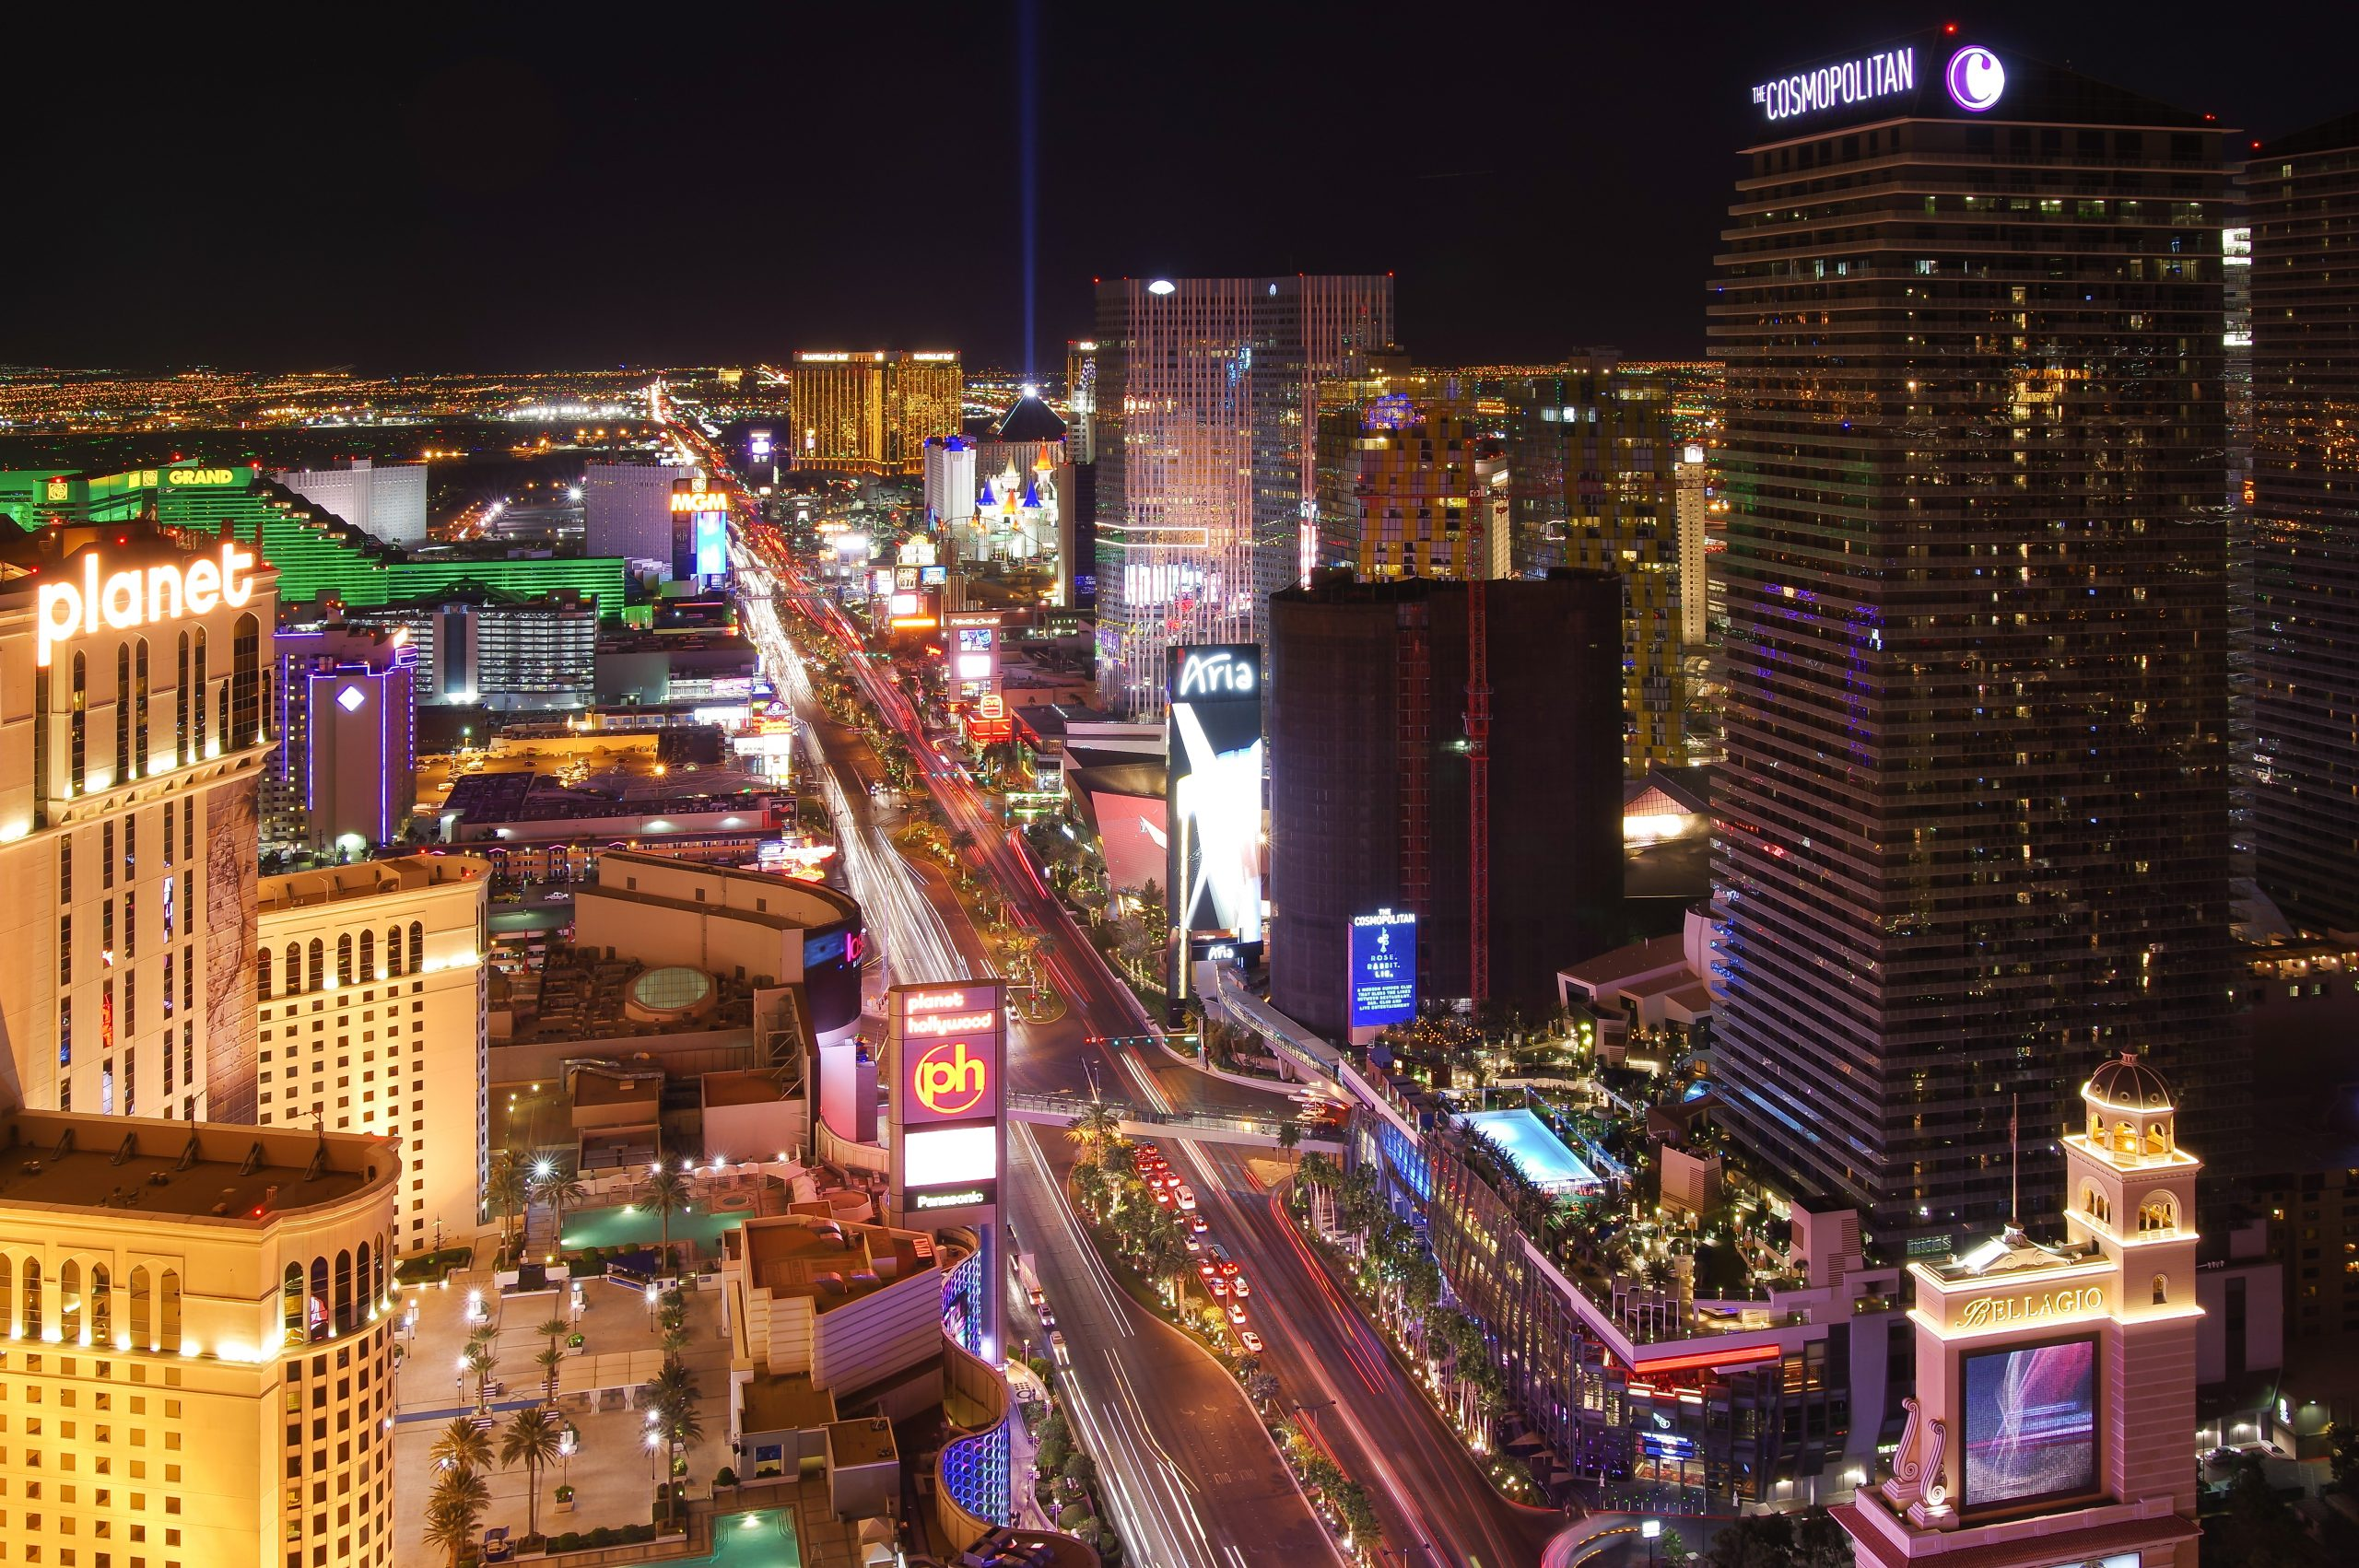 The Strip - Things That You Should Not Miss in Las Vegas